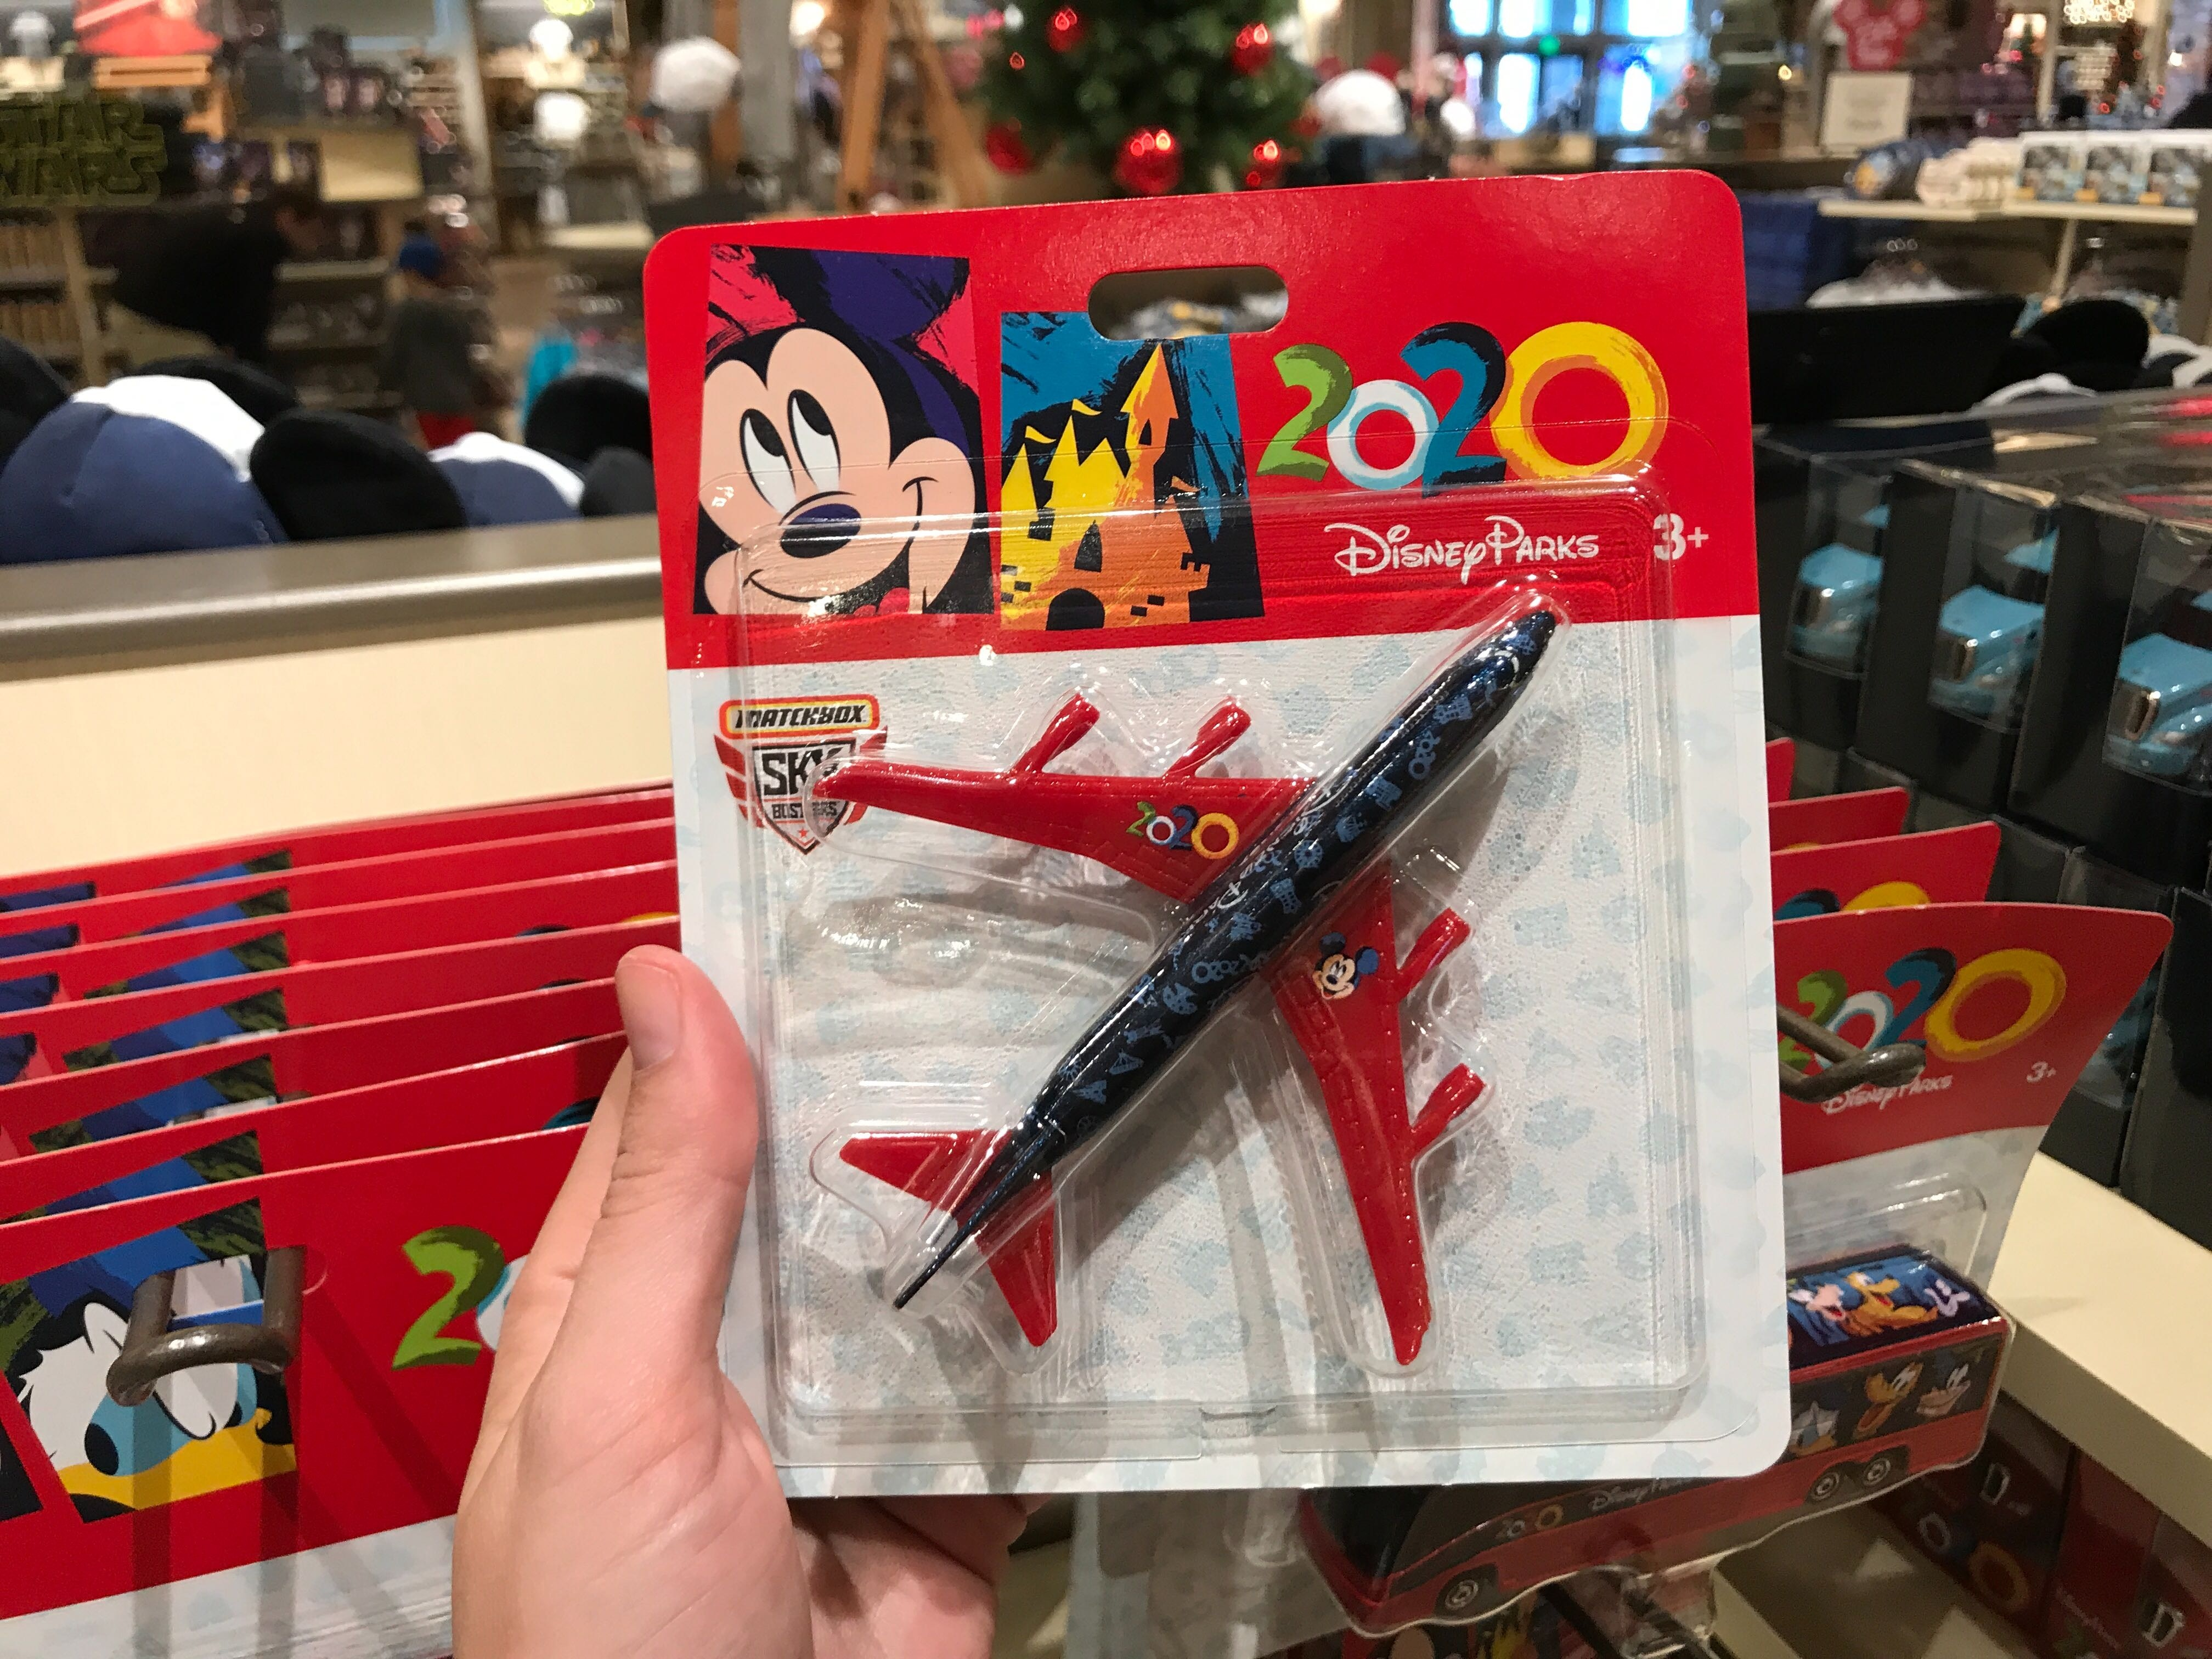 Toy Airplane - $9.99